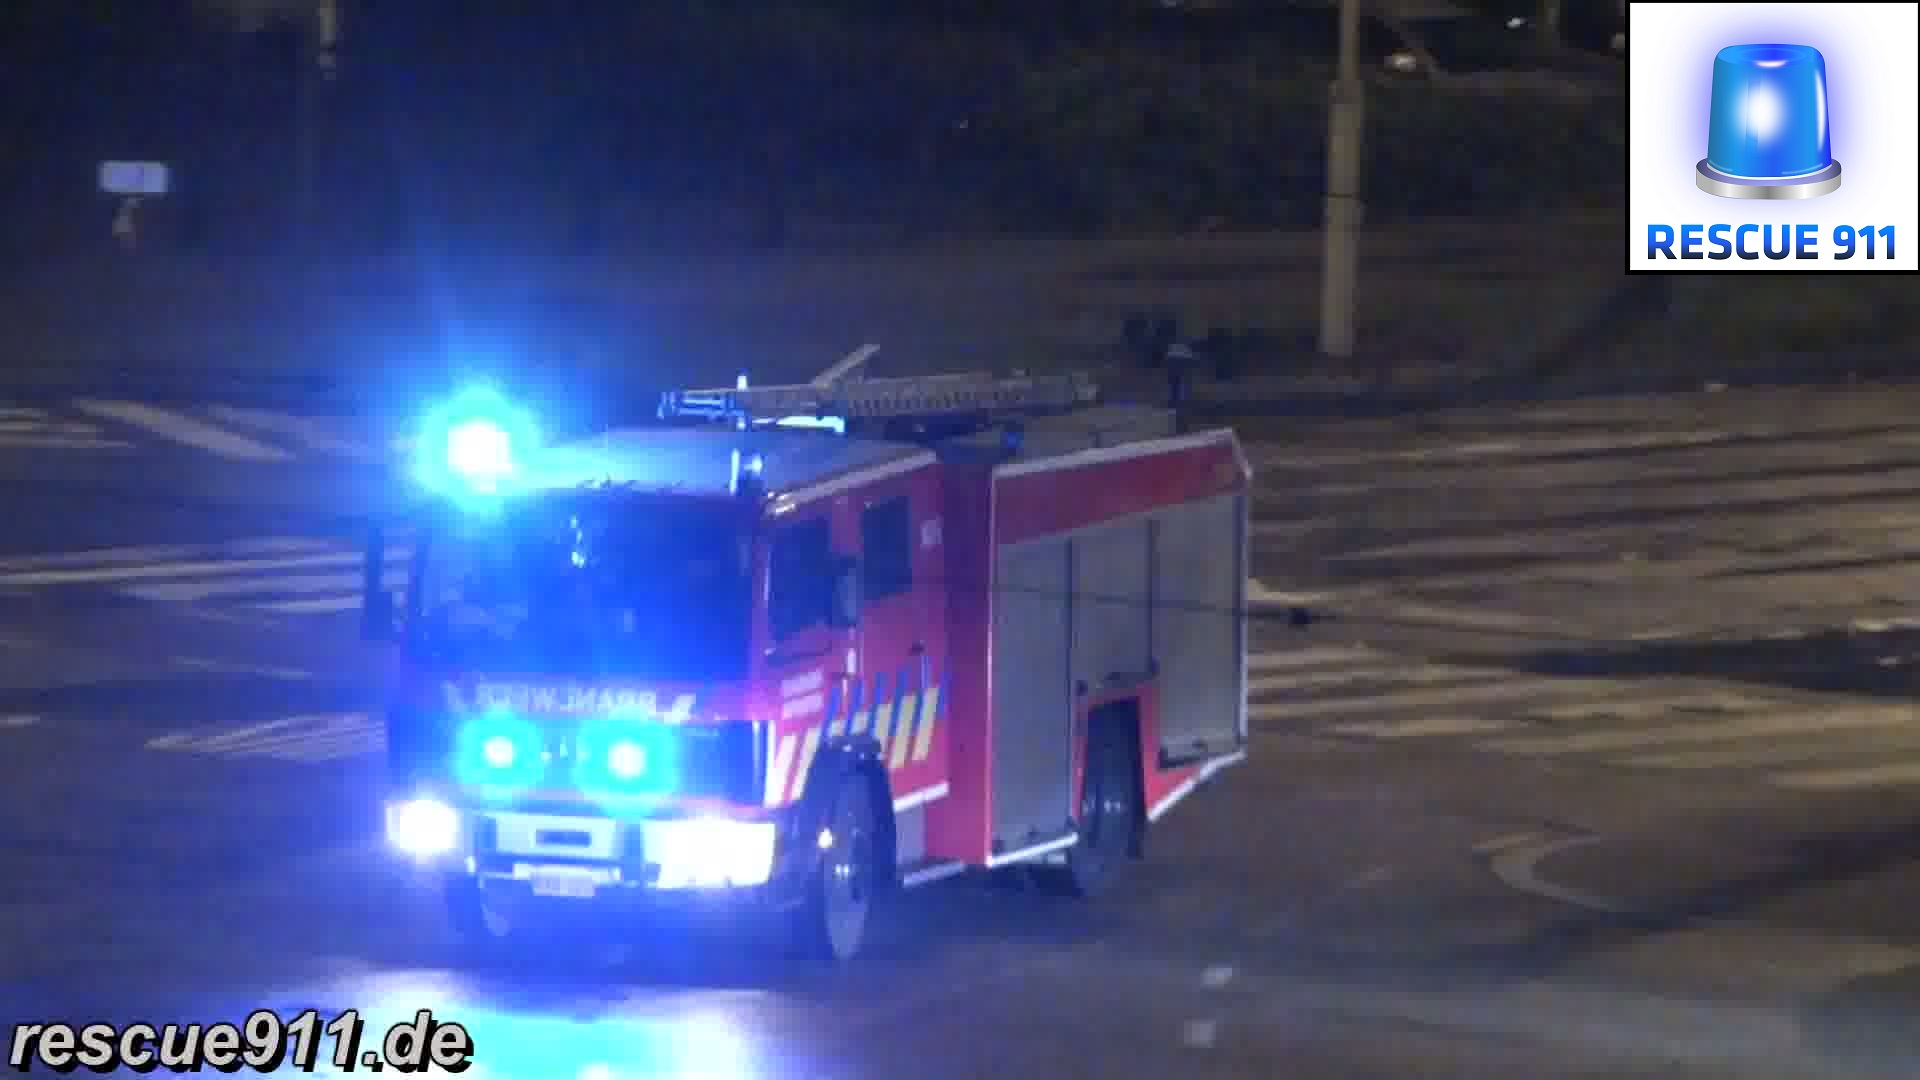 Commandowagen + 2e Hulp Brandweer Antwerpen Post Noord (collection) (stream)